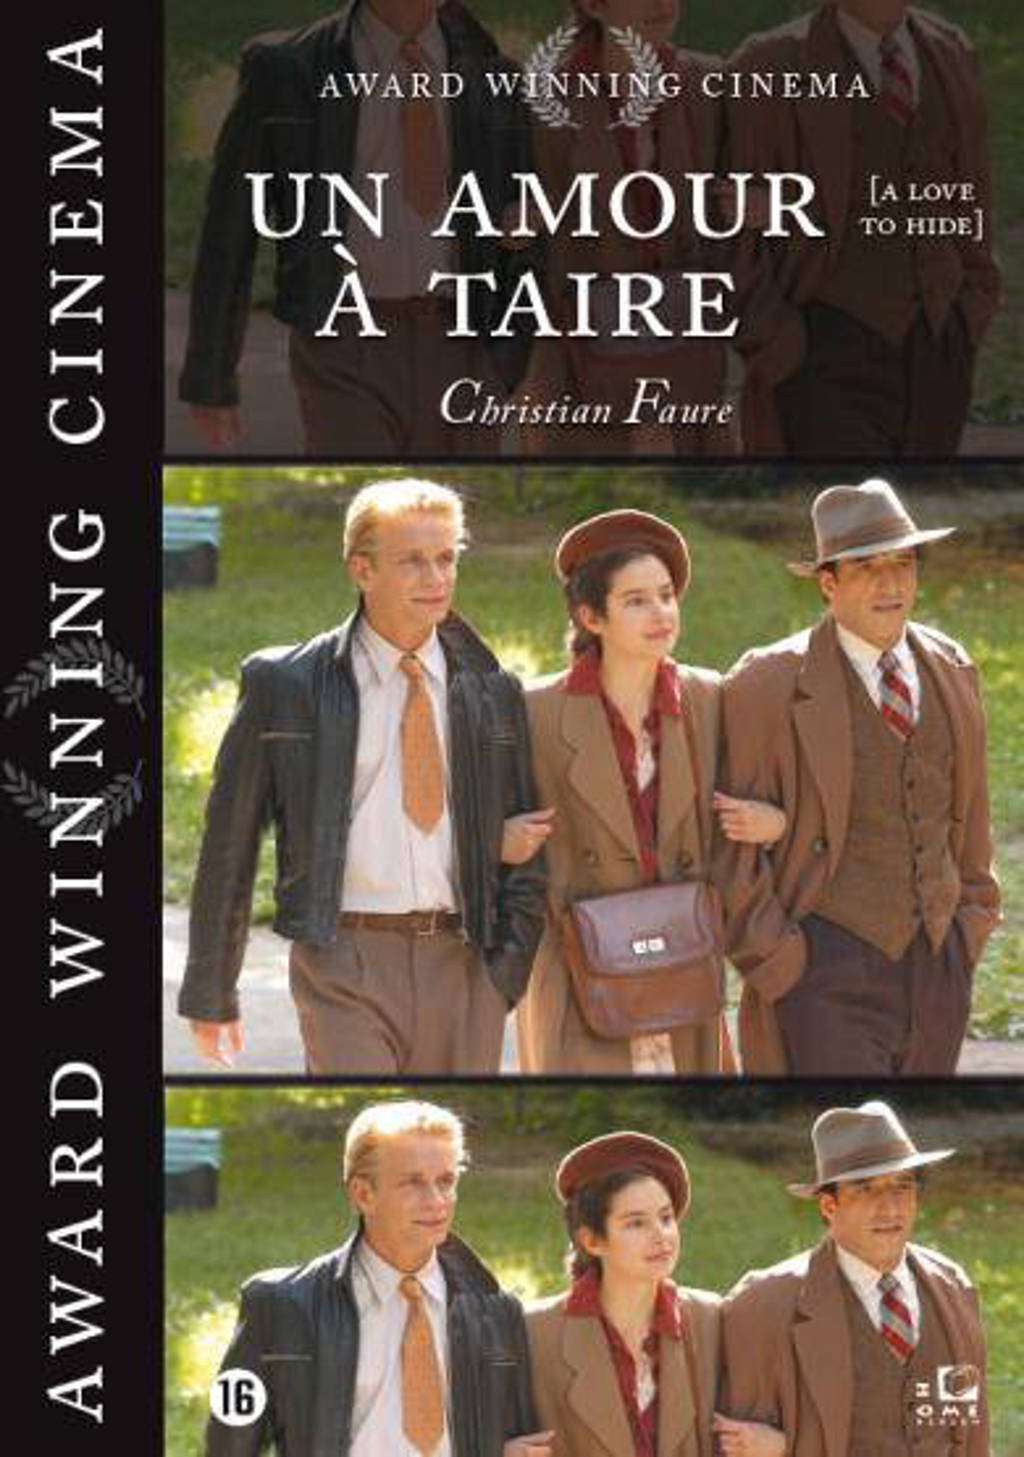 Un amour a taire (DVD)